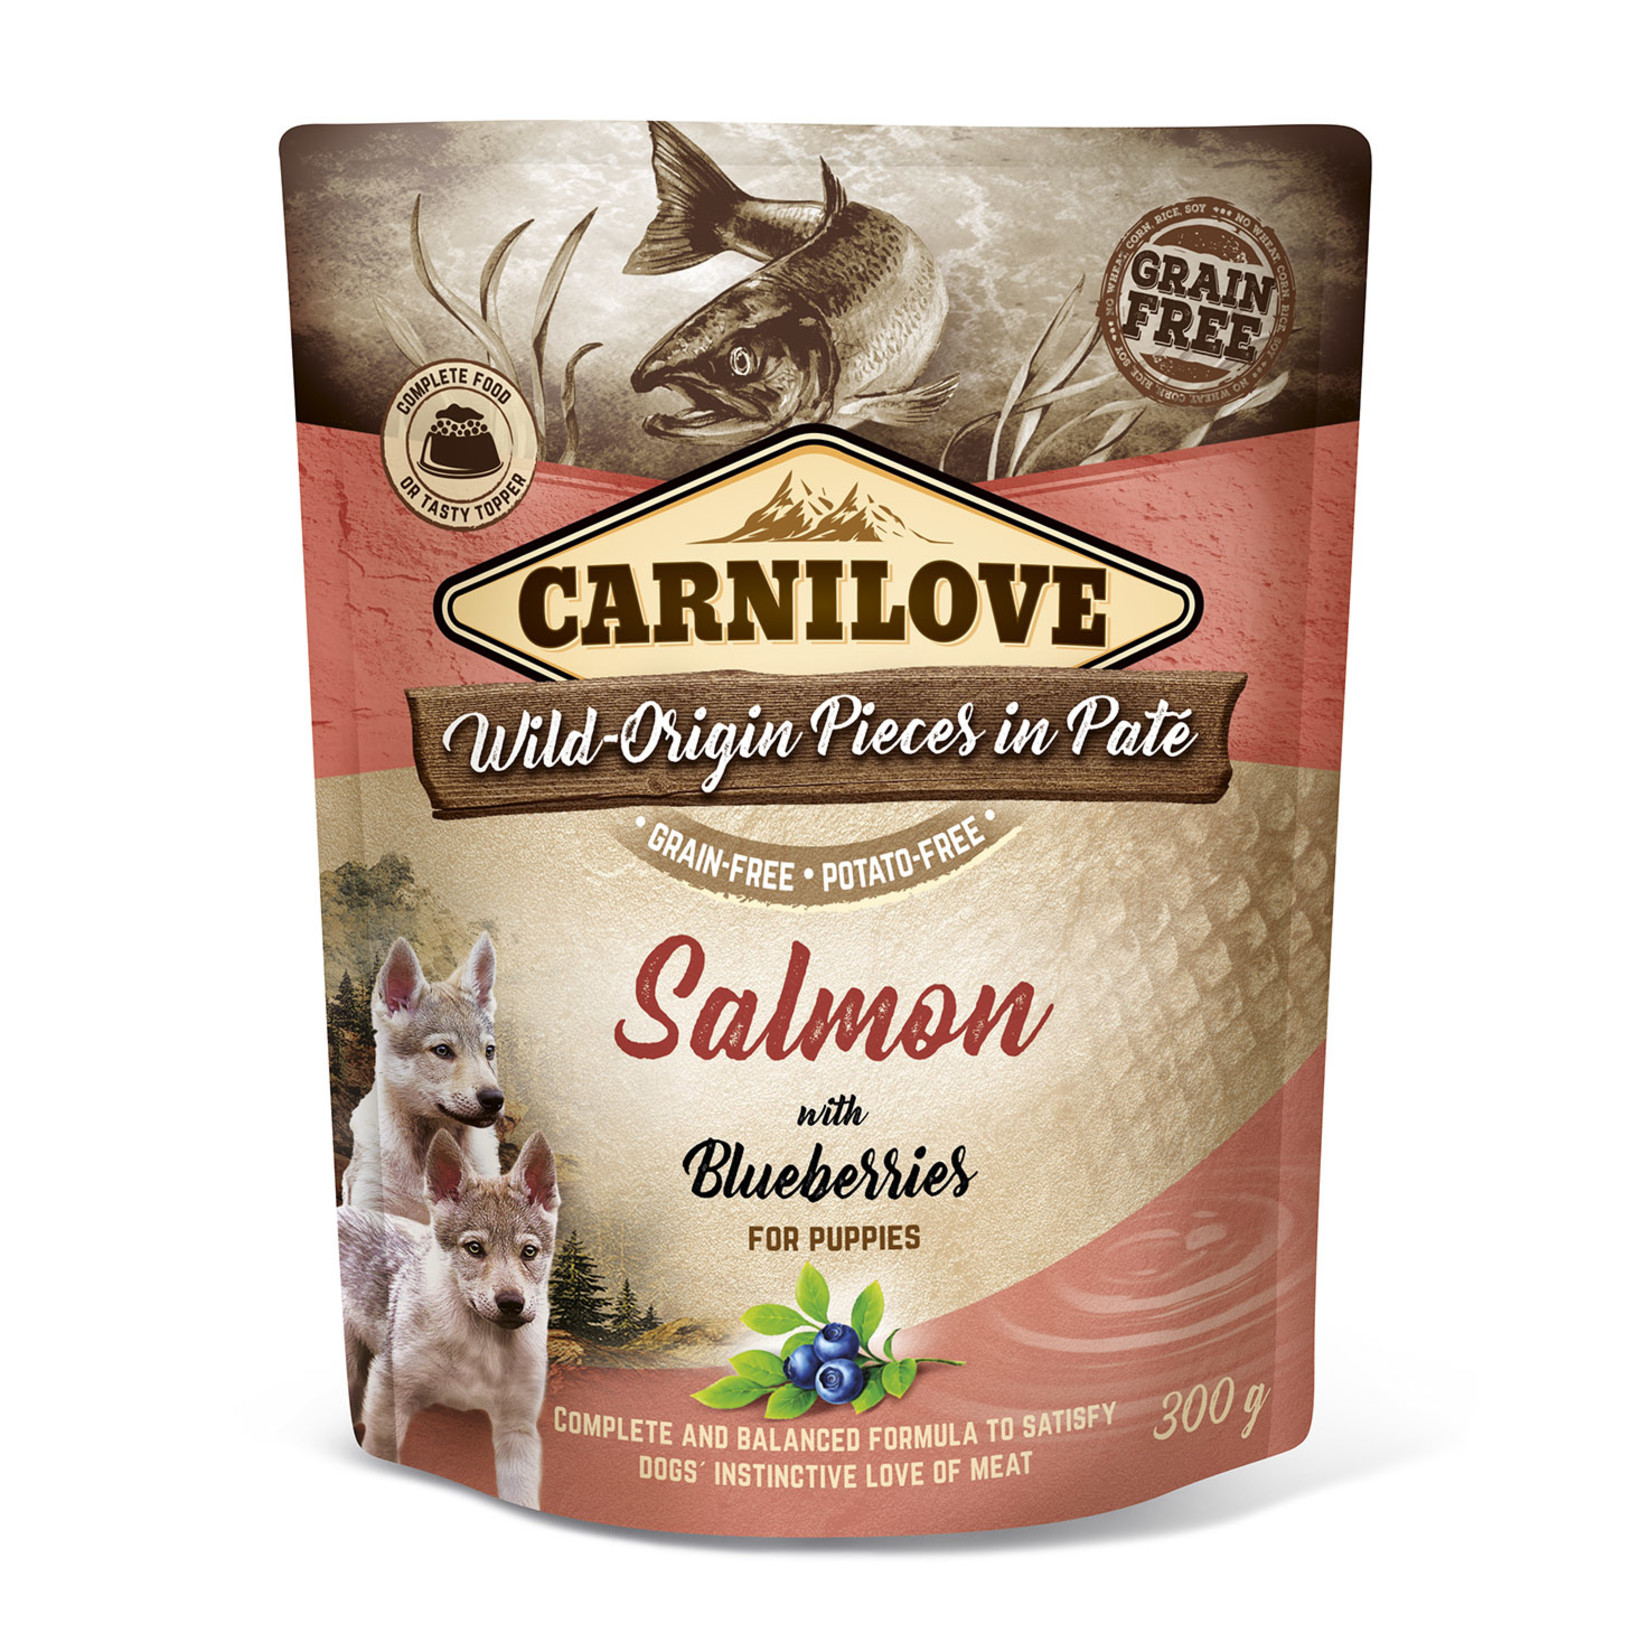 Carnilove pouch Salmon with Blueberries for pups 300gr